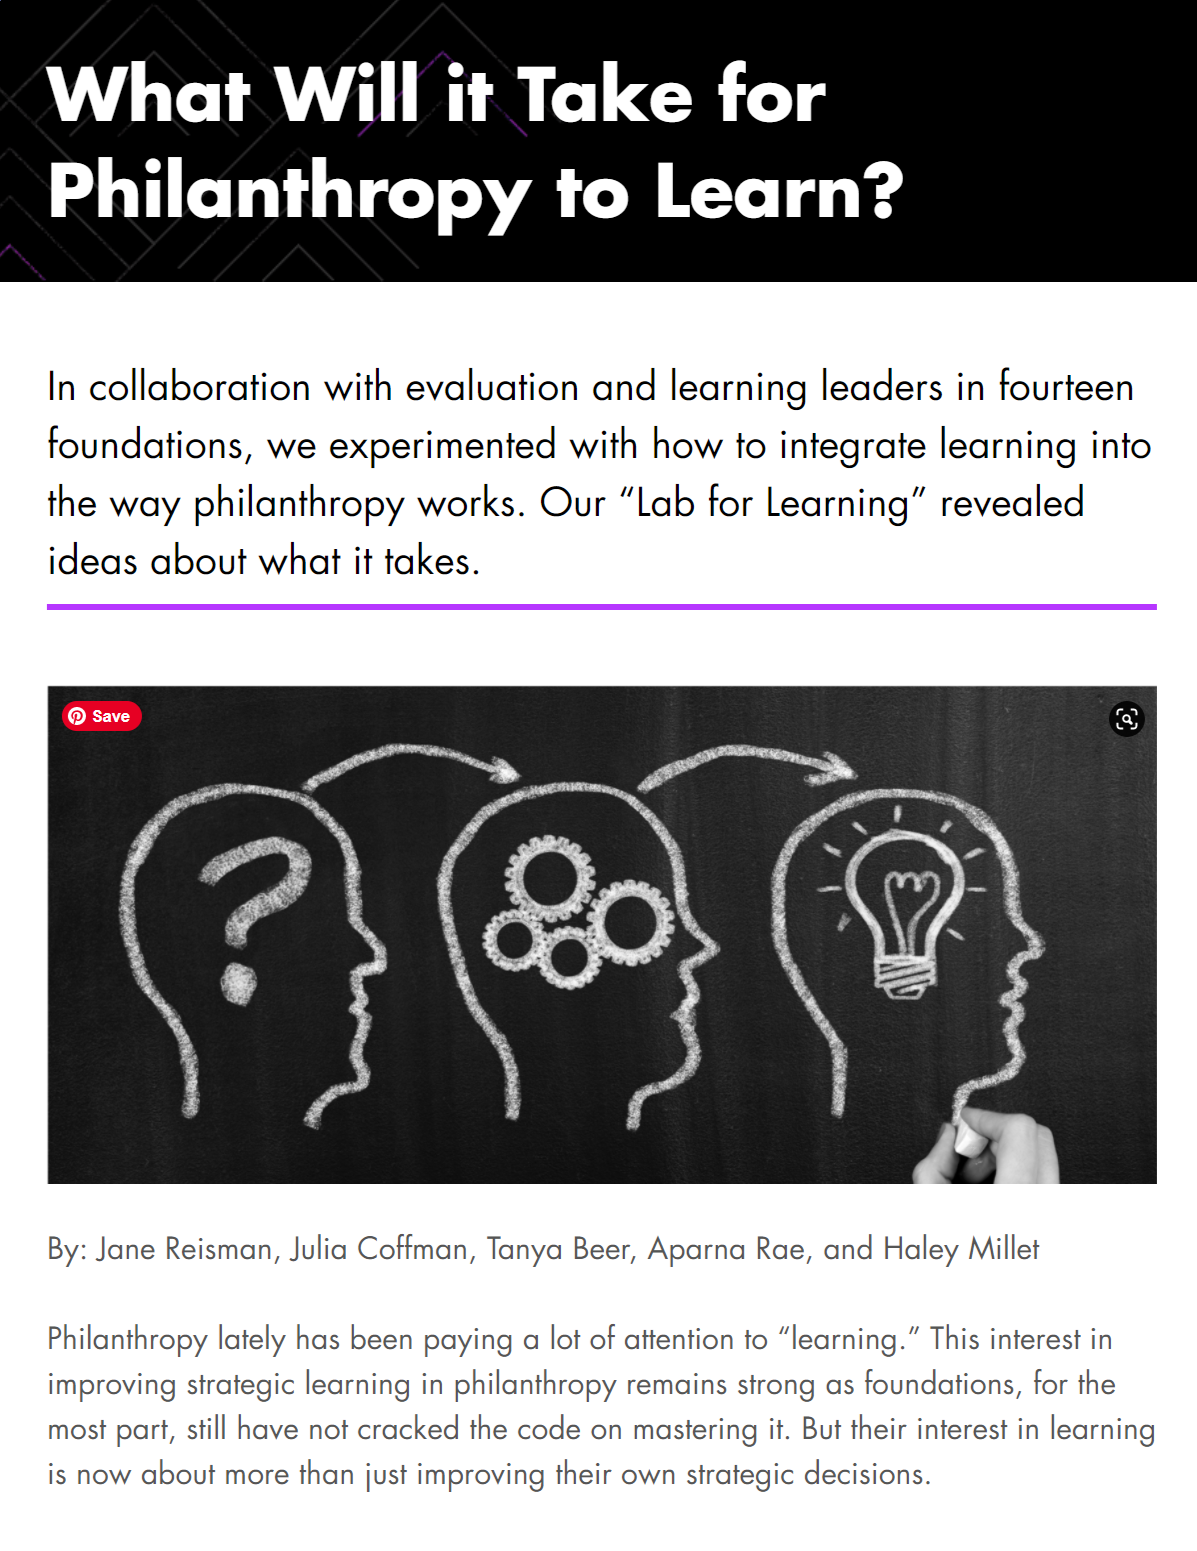 What Will it Take for Philanthropy to Learn?